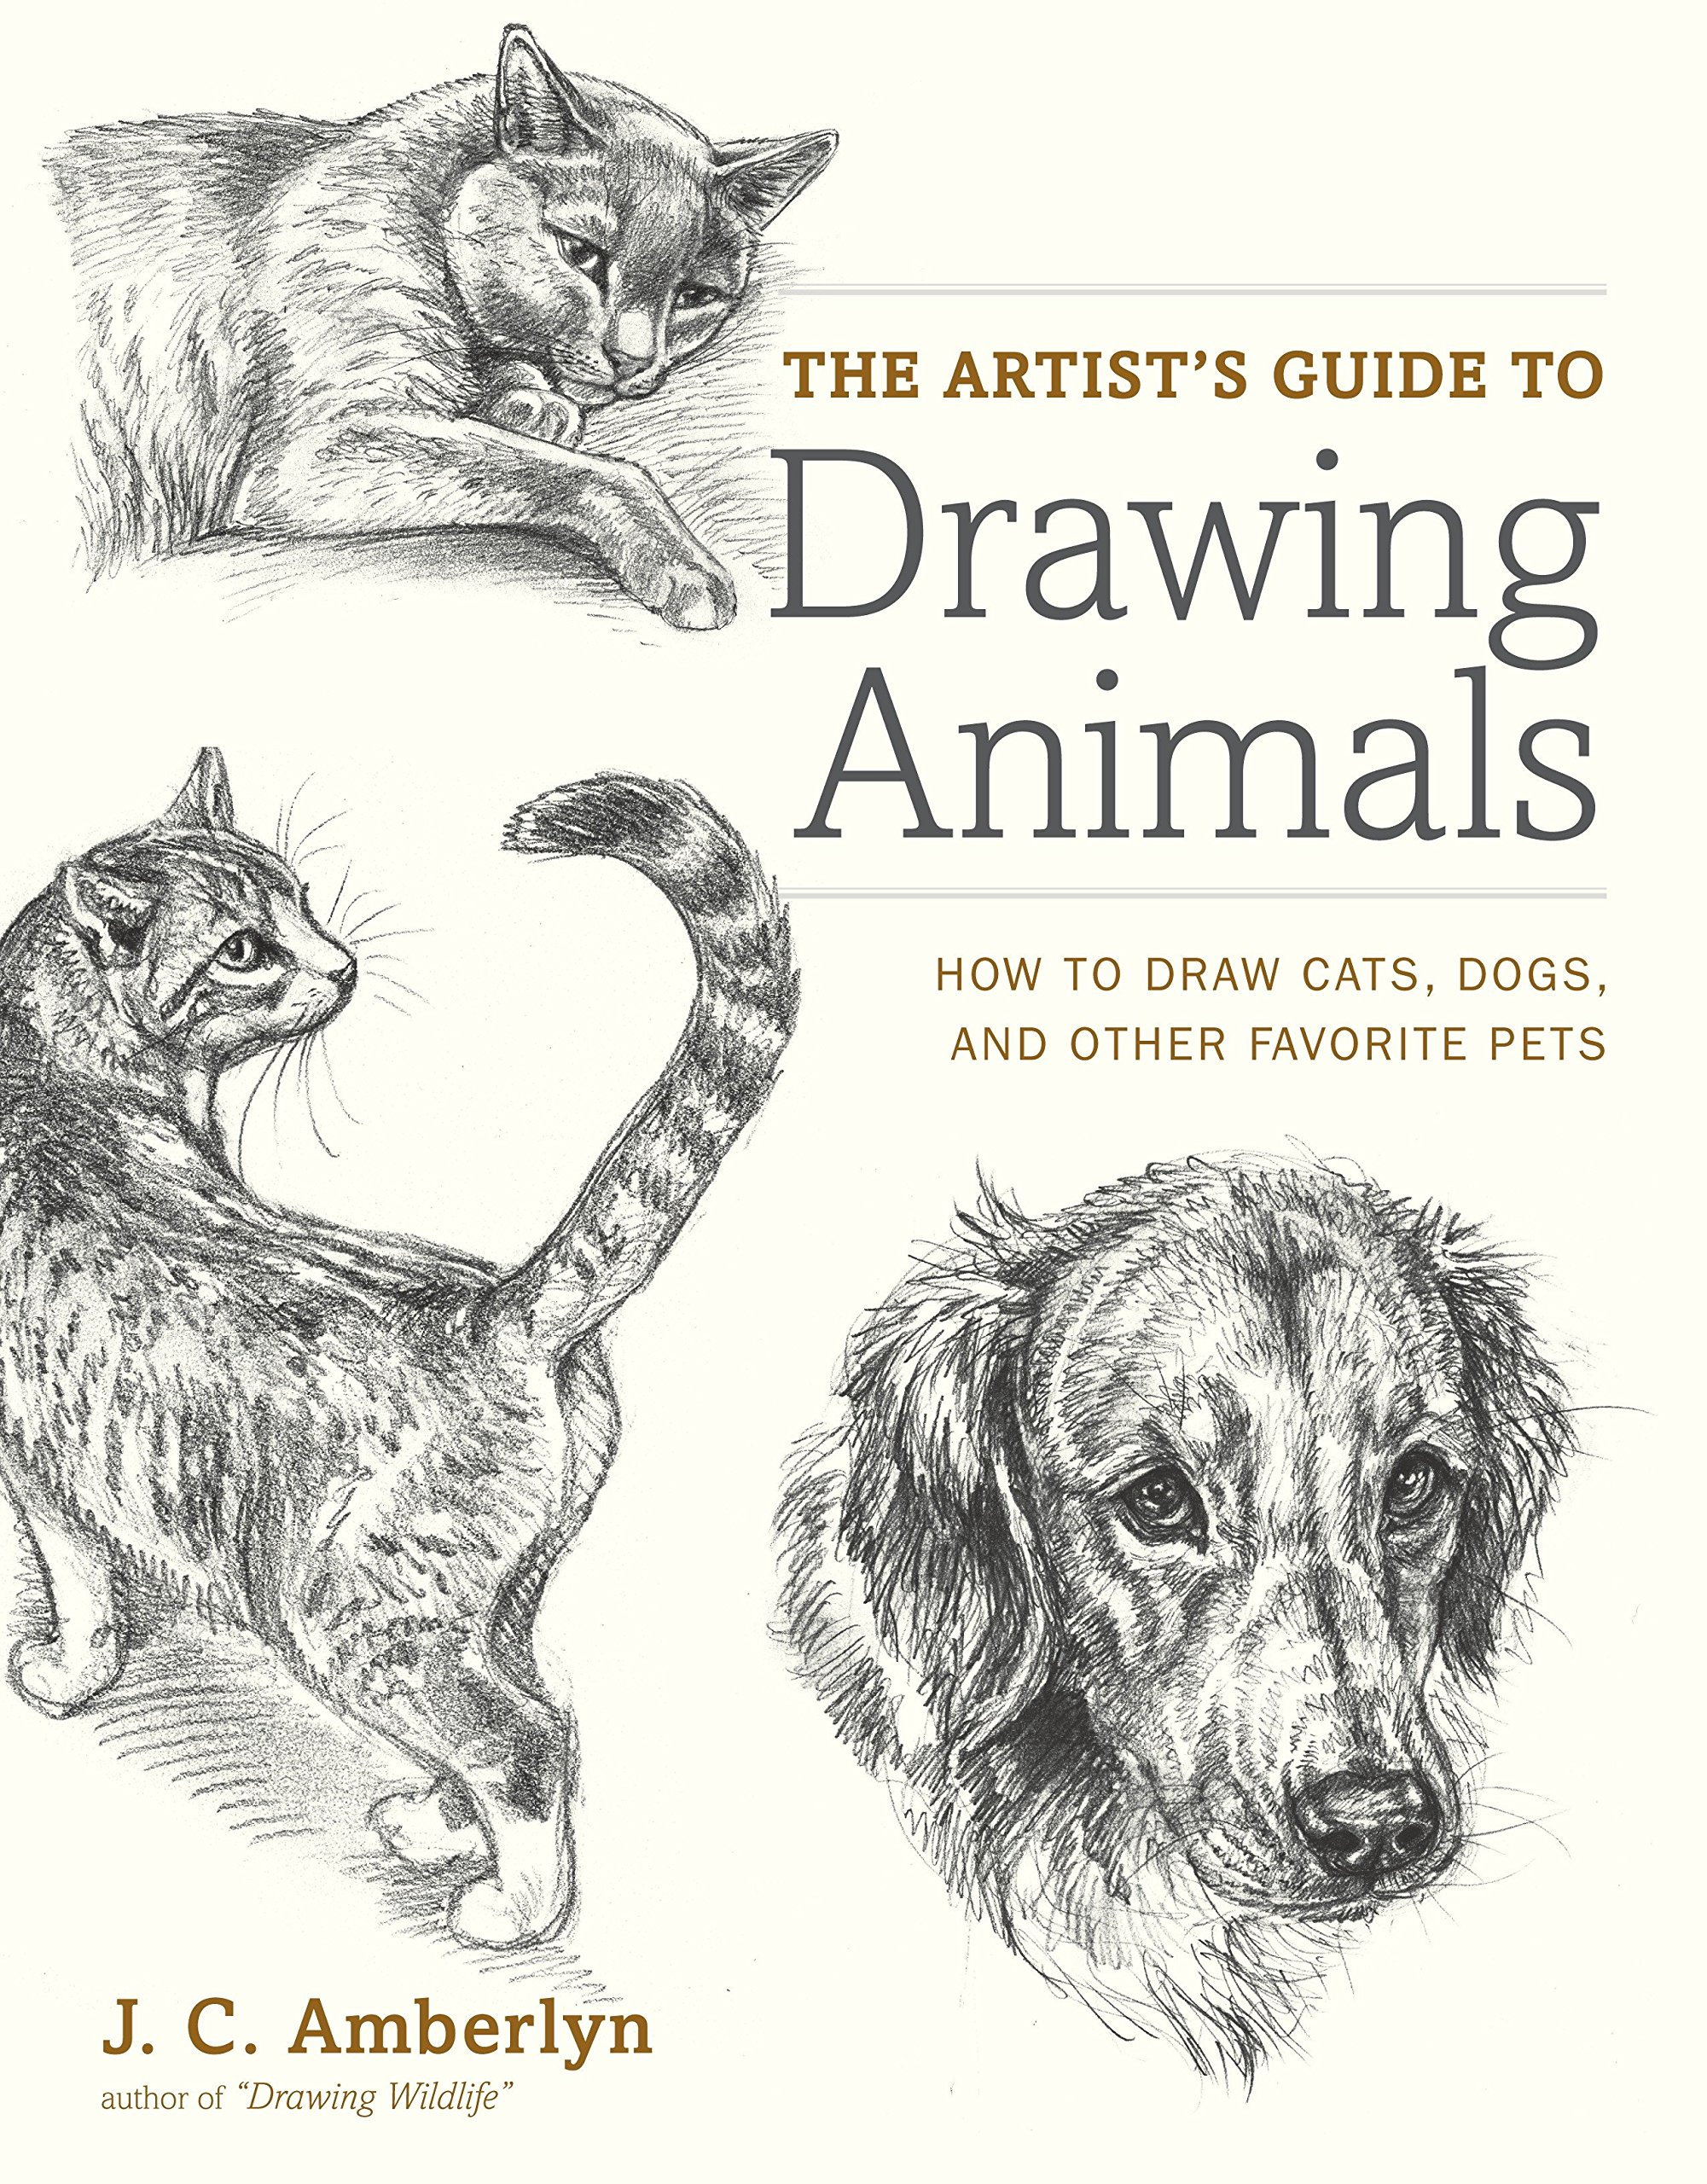 The artists guide to drawing animals how to draw cats dogs and other favorite pets j c amberlyn 9780823014231 amazon com books